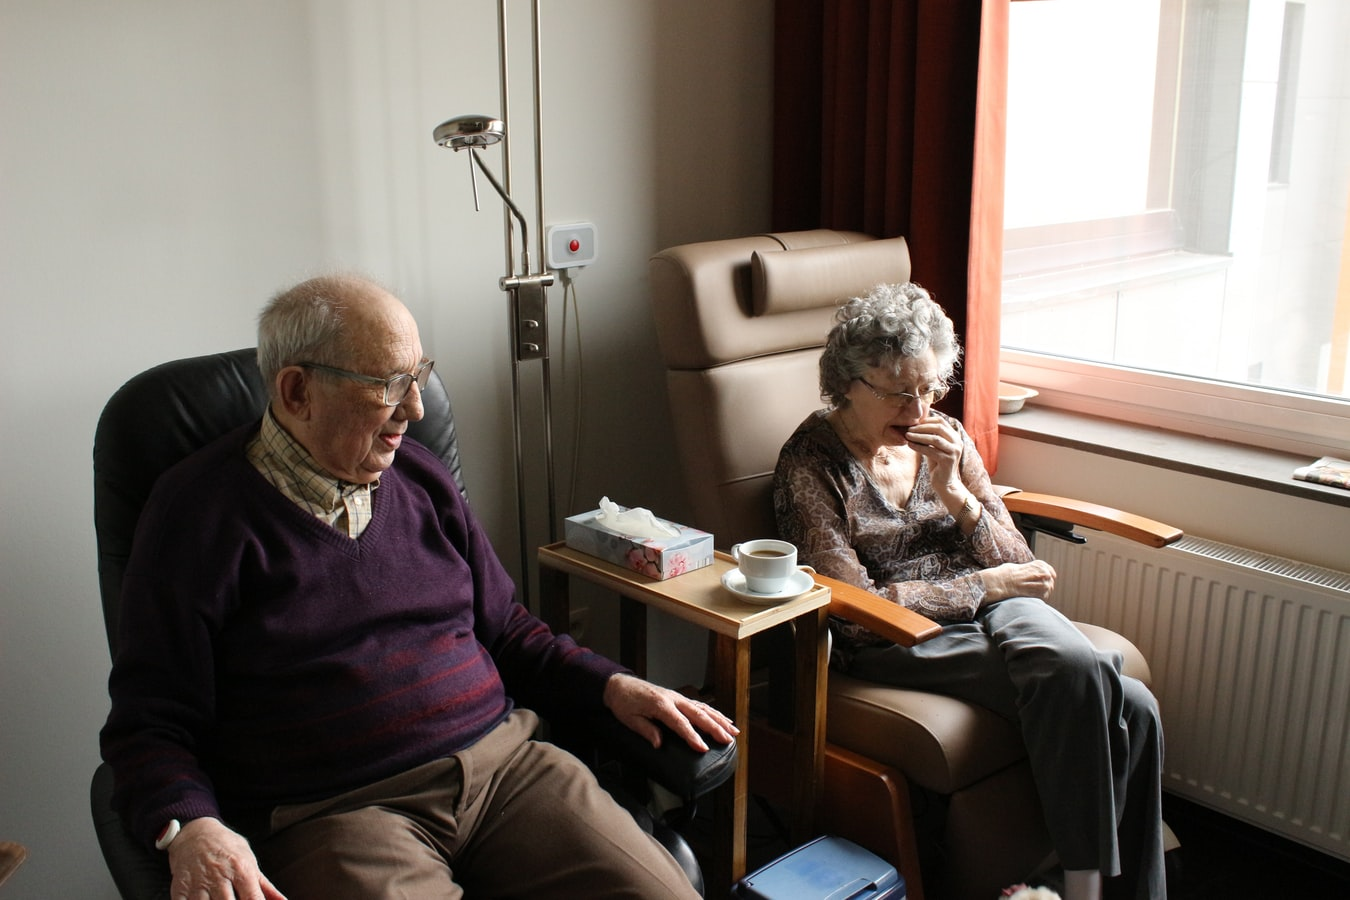 An elderly couple sitting together after receiving cancer treatment